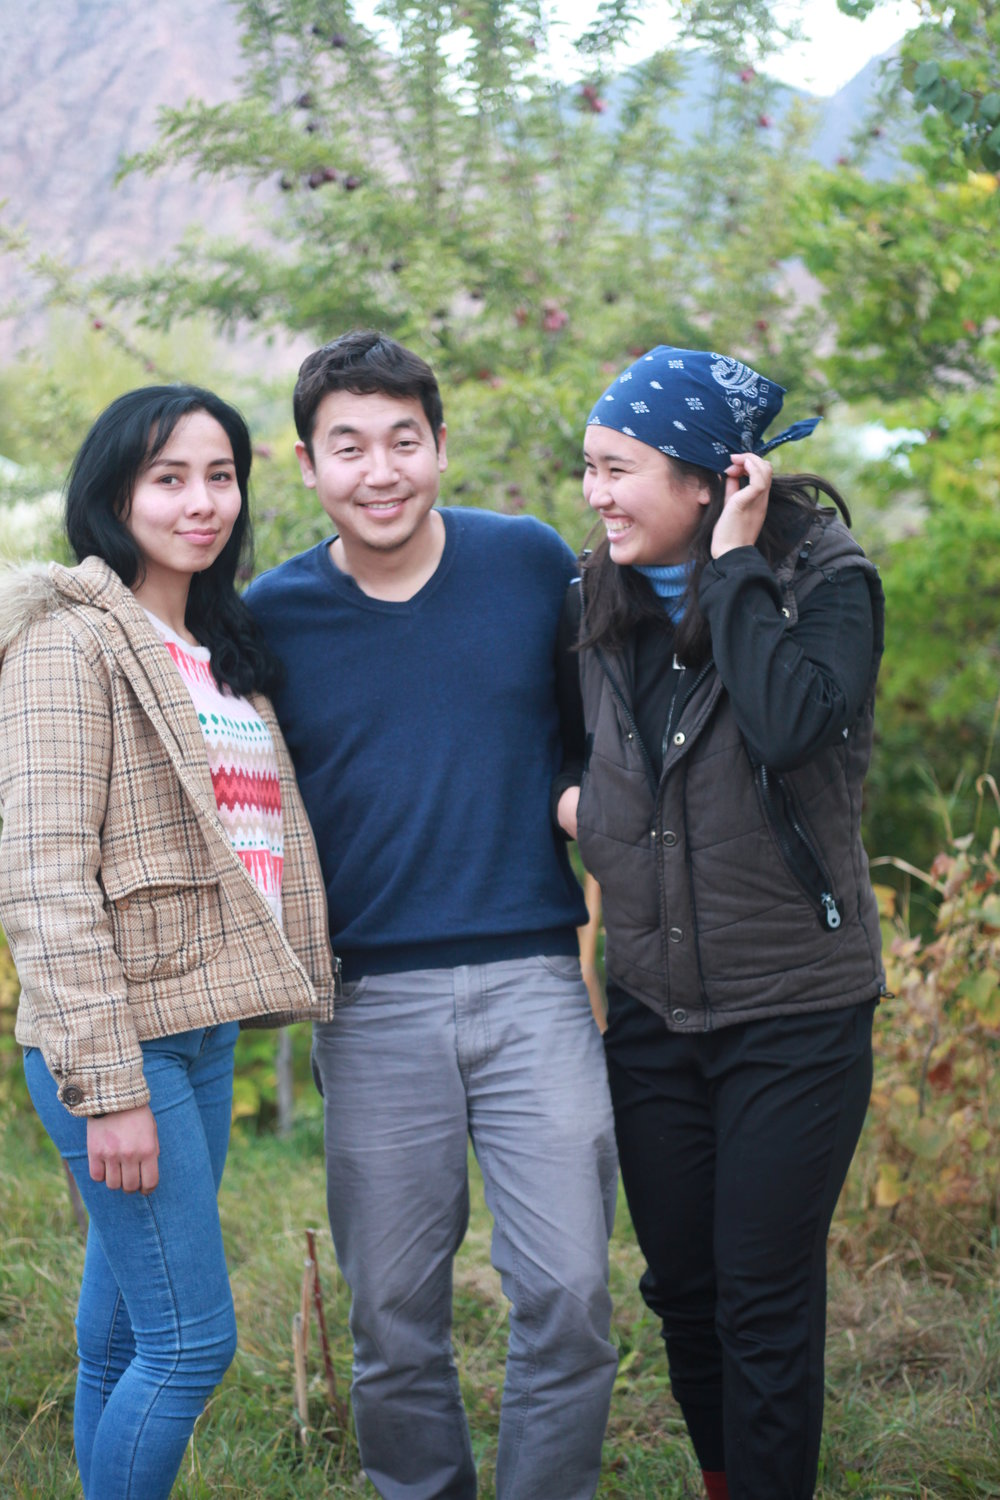 Anara Taalaybek Kyzy, who plays Mira; writer and director Daniar Abdykerimov; and casting director Umsunay Musaeva